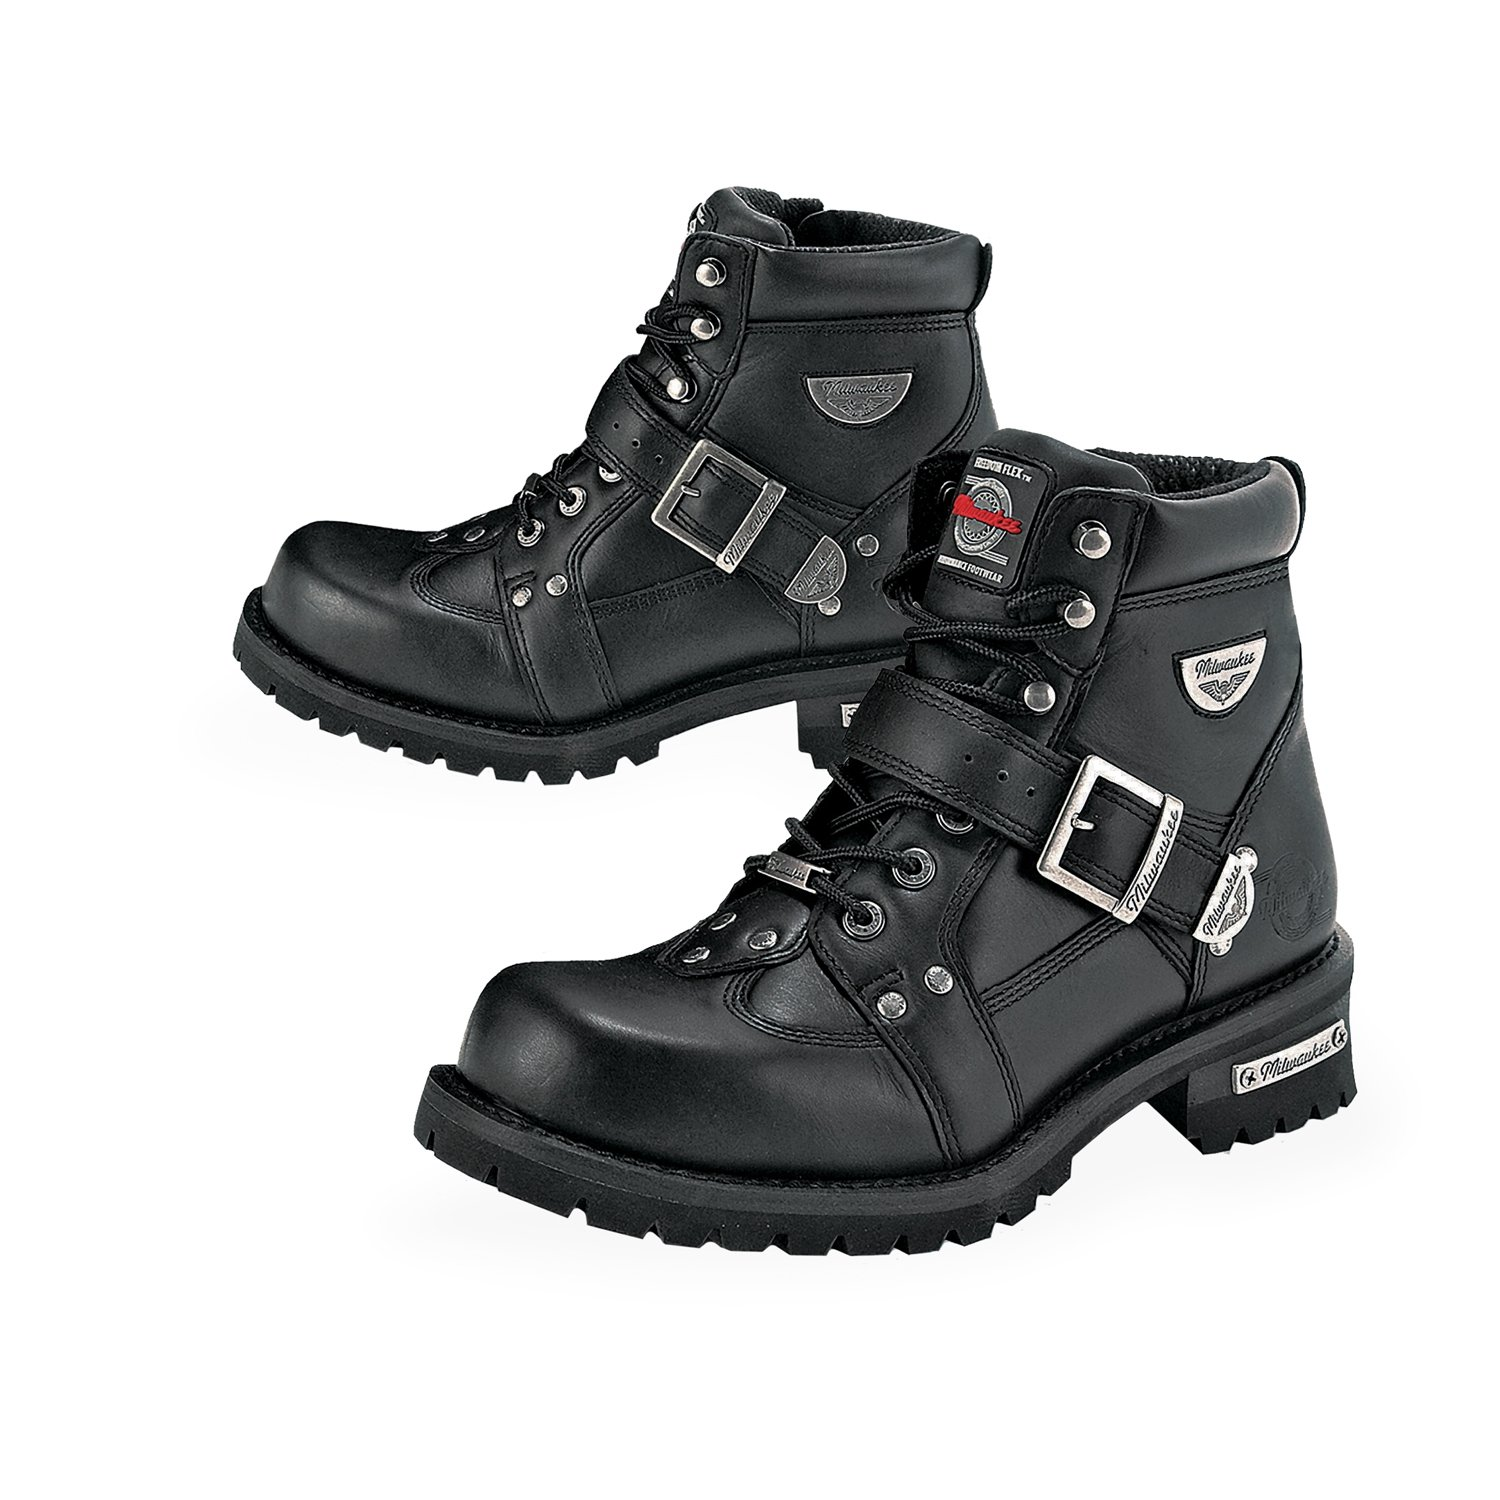 Milwaukee Motorcycle Clothing Company Men's Road Captain Motorcycle Boots (Size 12D)